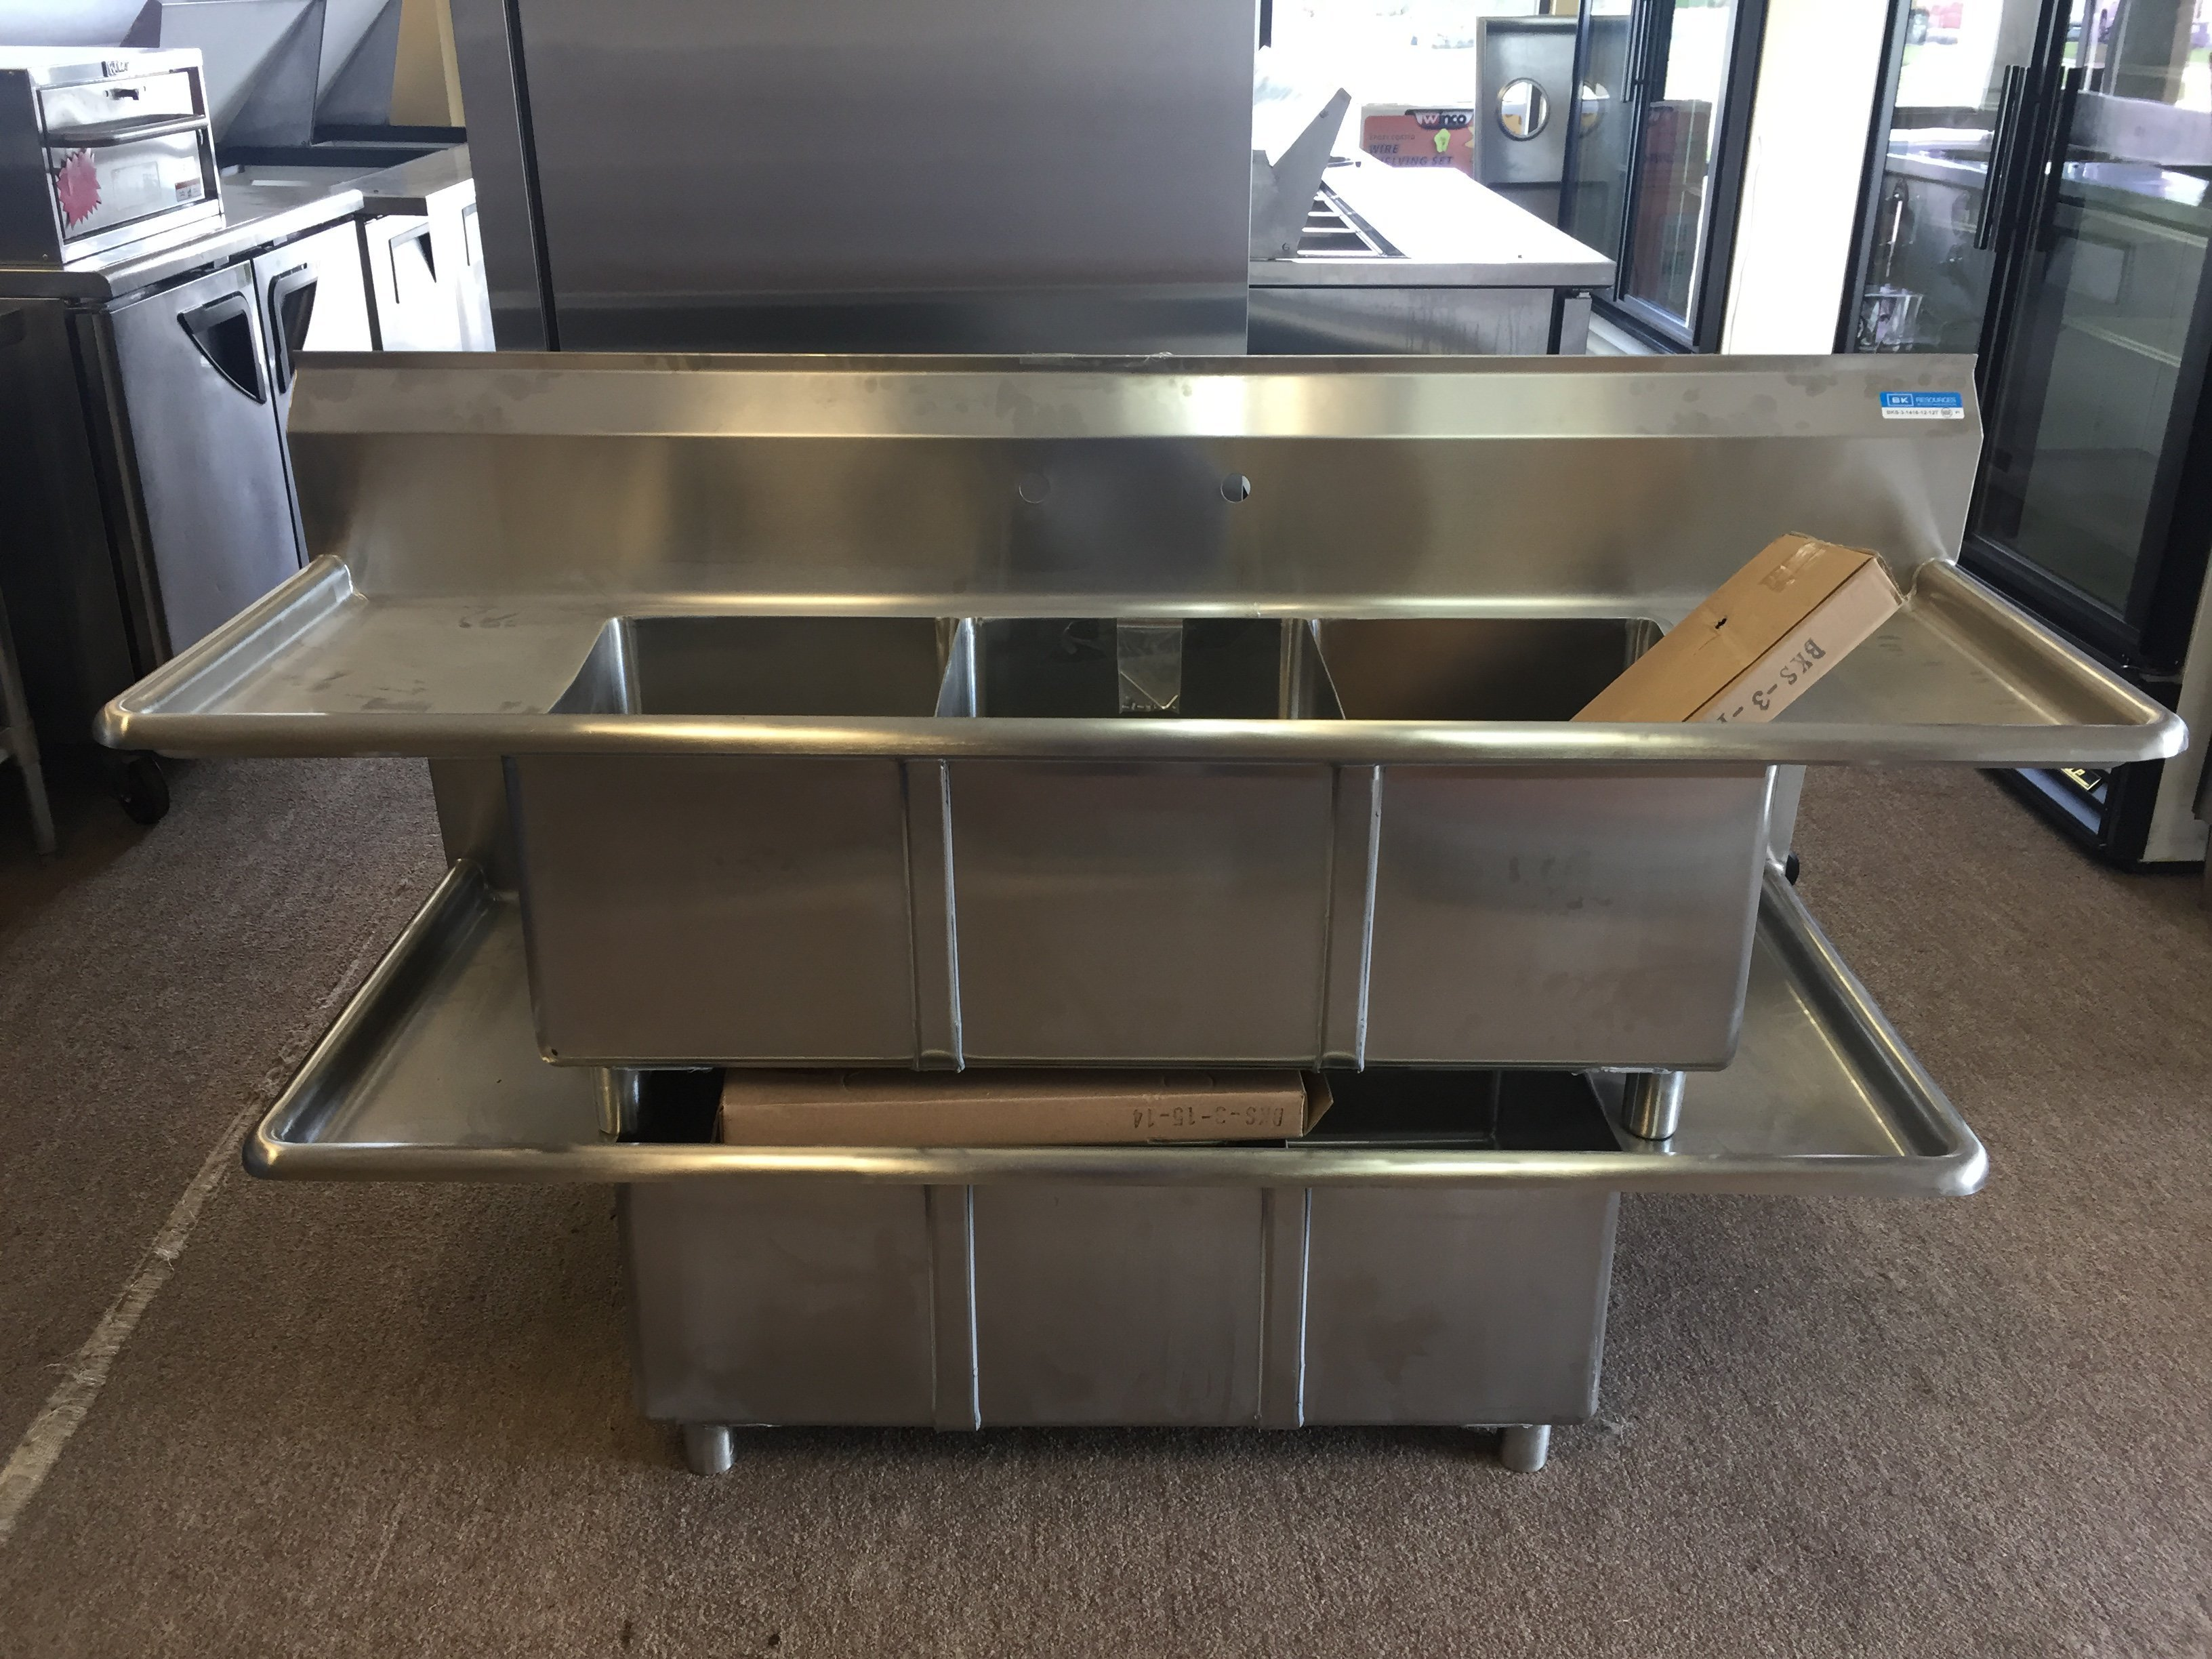 New BK Resources 3 Comp Sink with Drainboard Starting @ $550.00 and Up